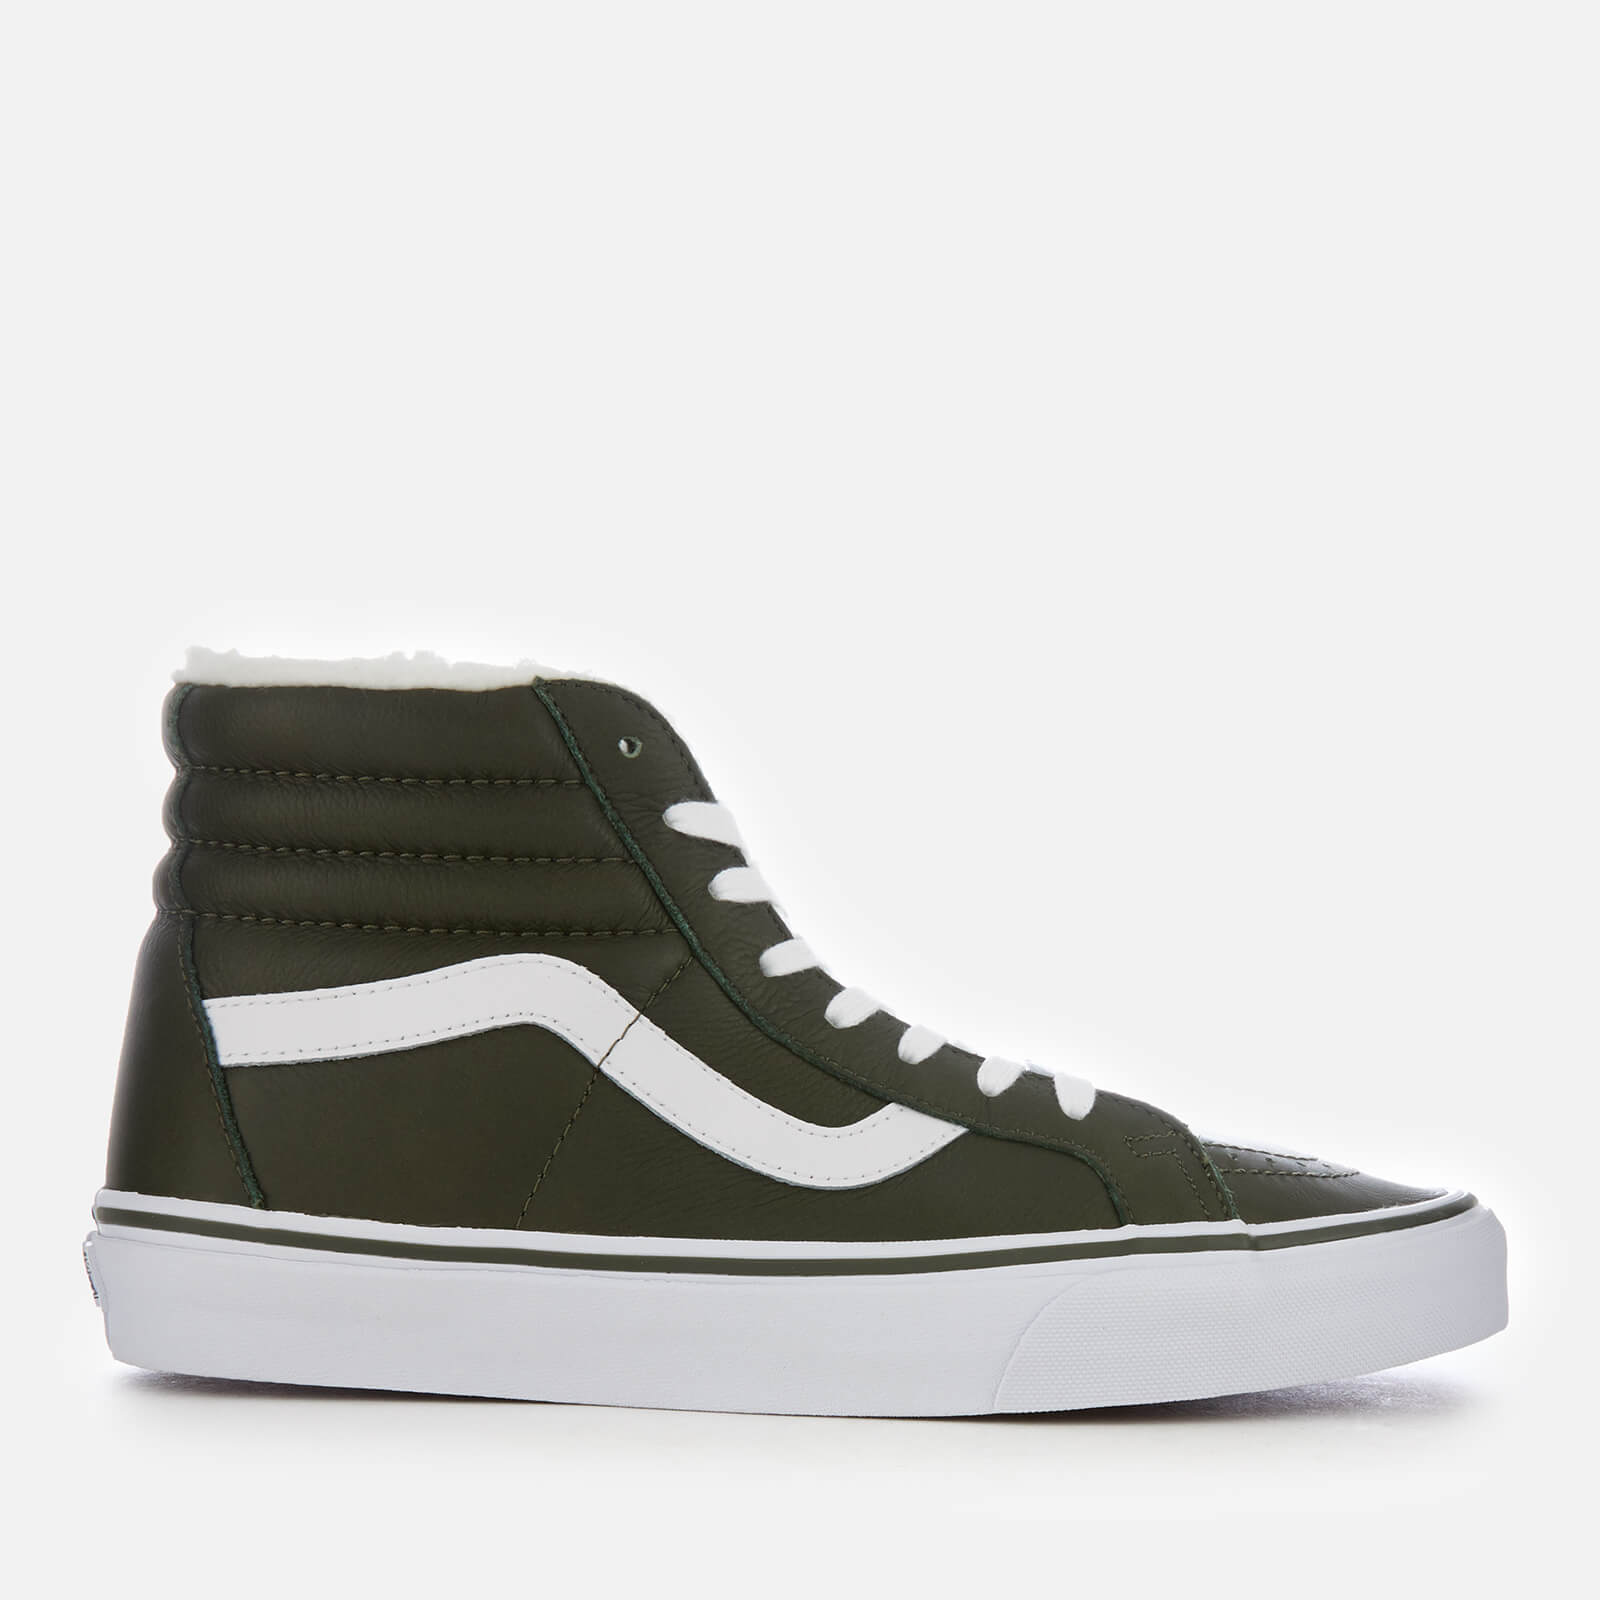 06366381185f74 Vans Men s Sk8-Hi Reissue Leather Fleece Trainers - Olive Night True White  Clothing